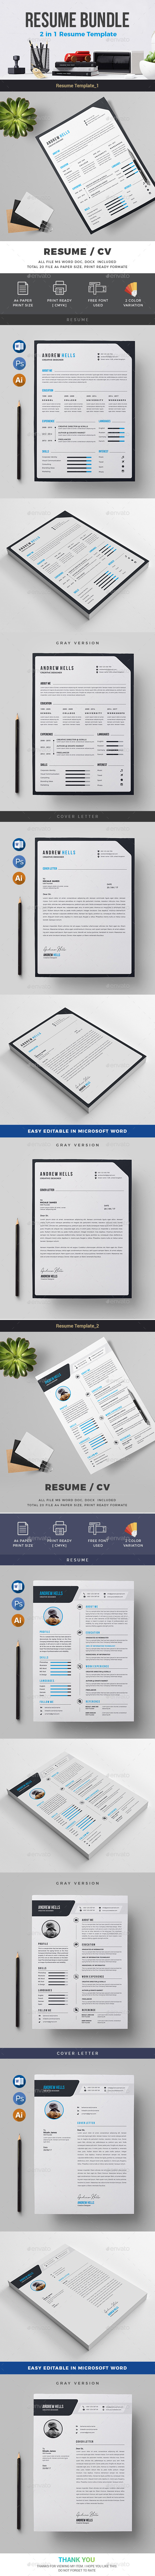 Resume Bundle 2 in 1 - Resumes Stationery